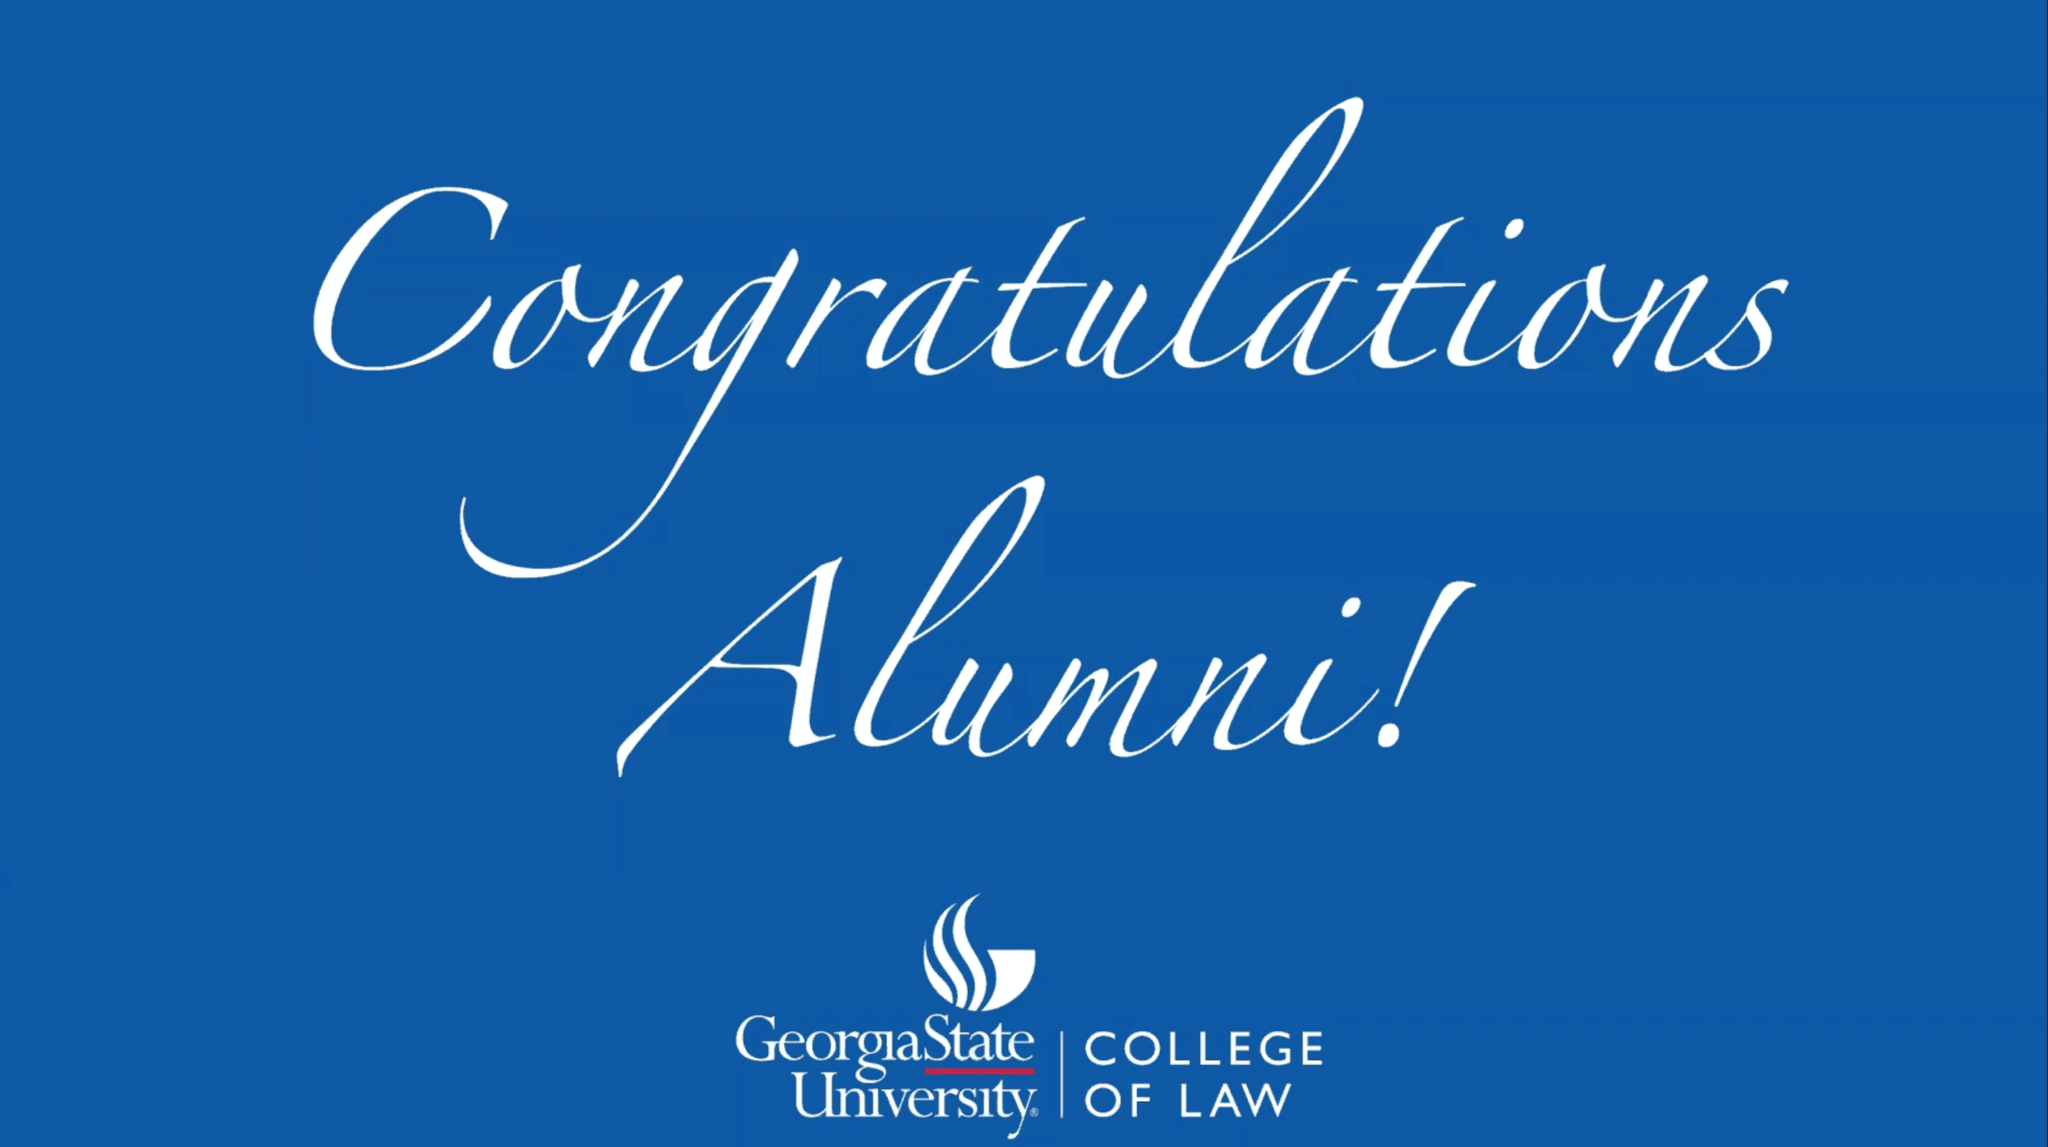 Congratulations Alumni - College of Law